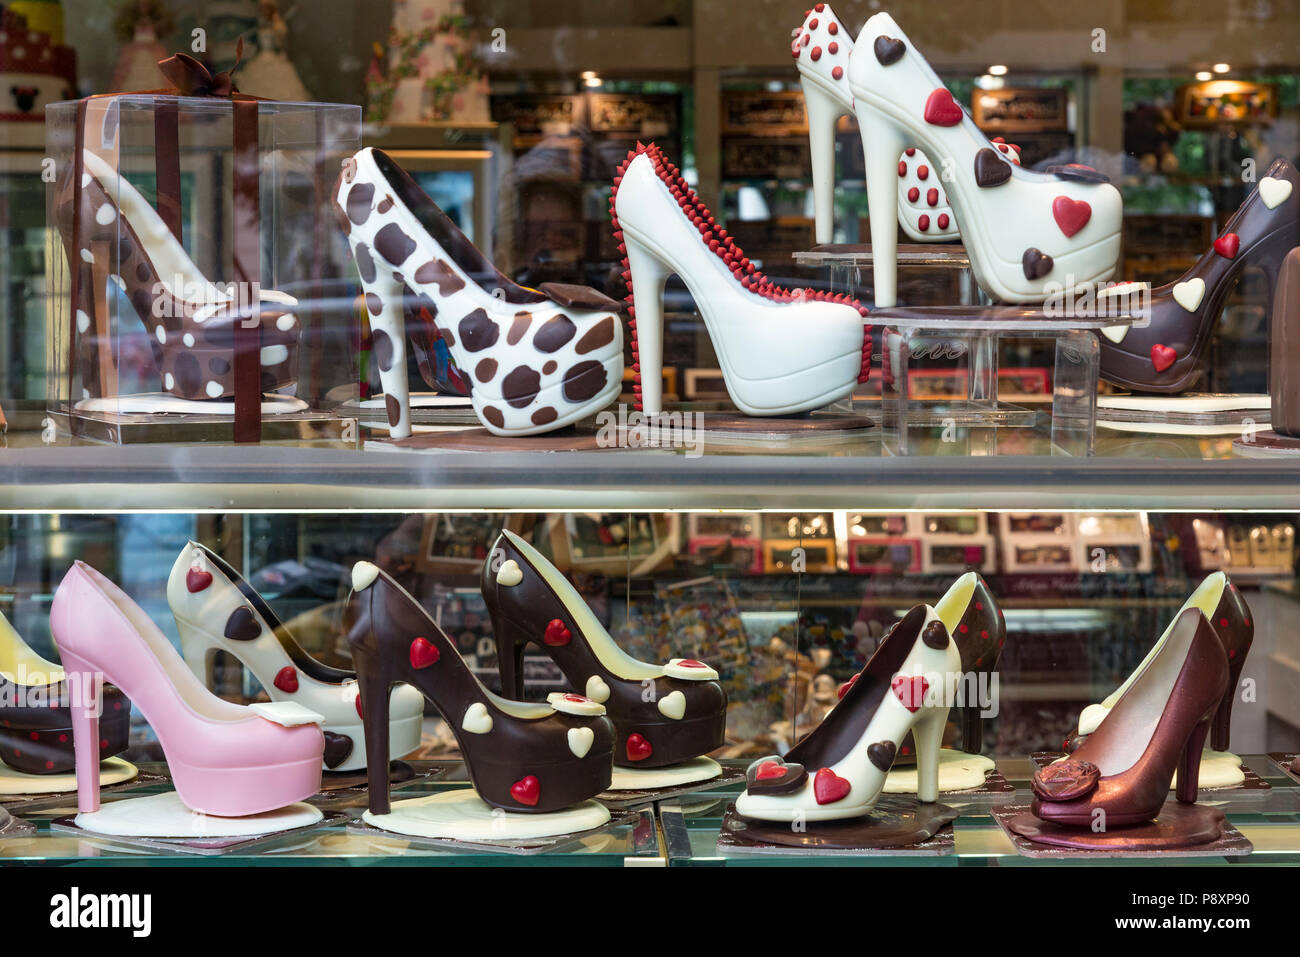 Chocolate shoes on display in Agapitos Patisserie in, Thessaloniki Macedonia, Northern Greece - Stock Image